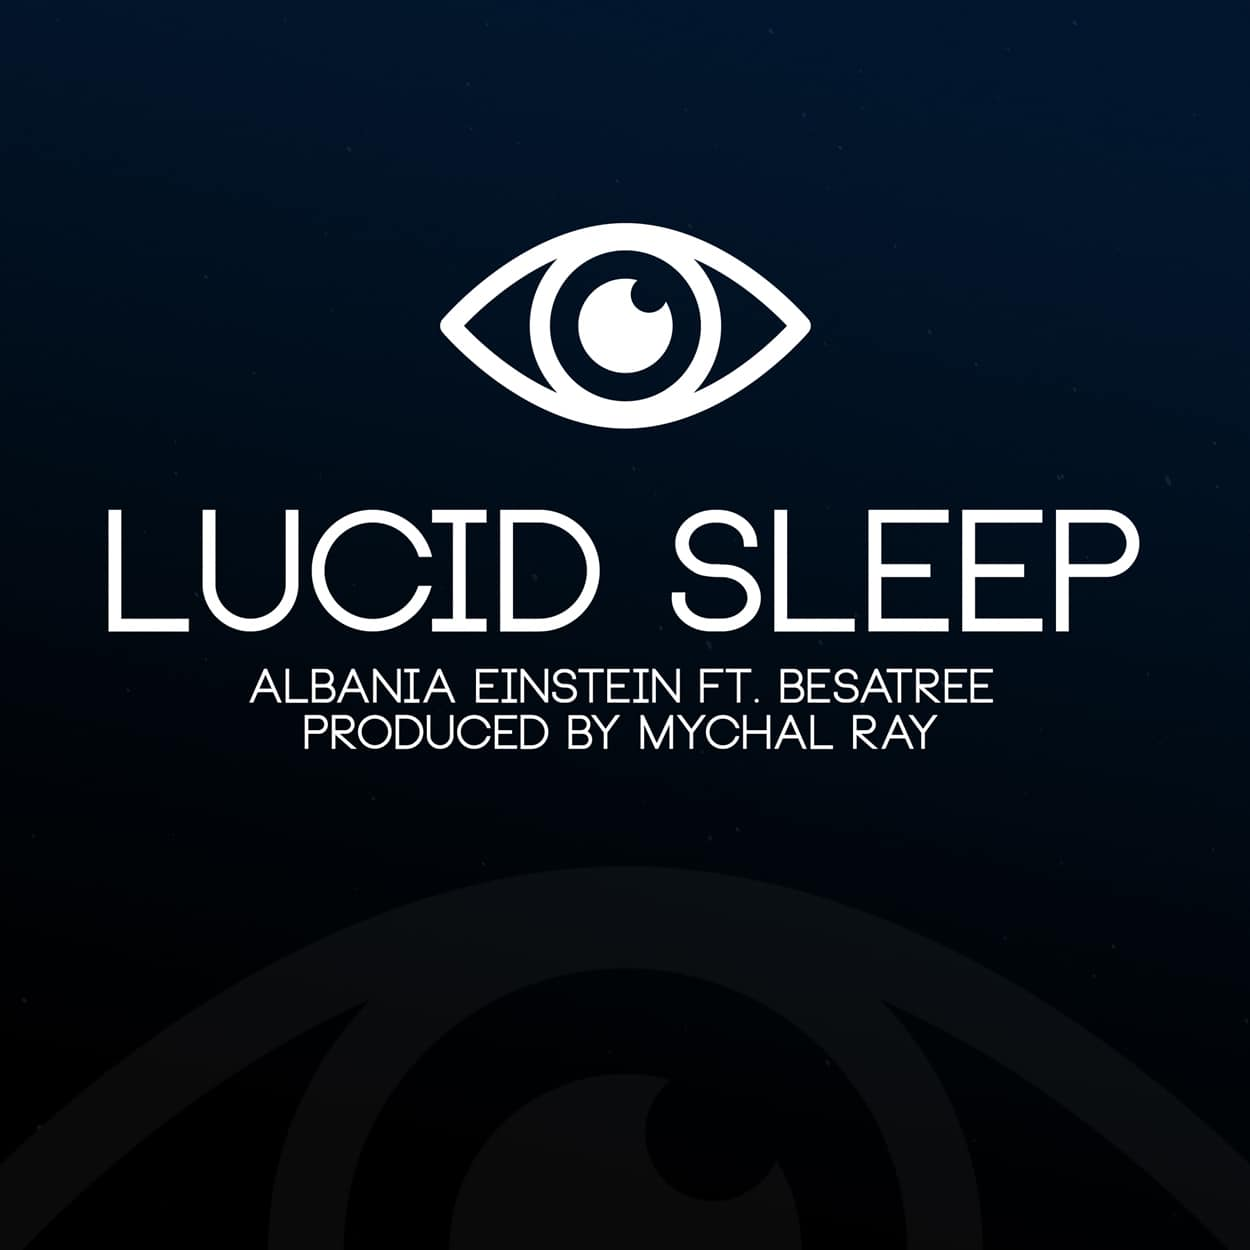 albania einstein - lucid sleep - album art design